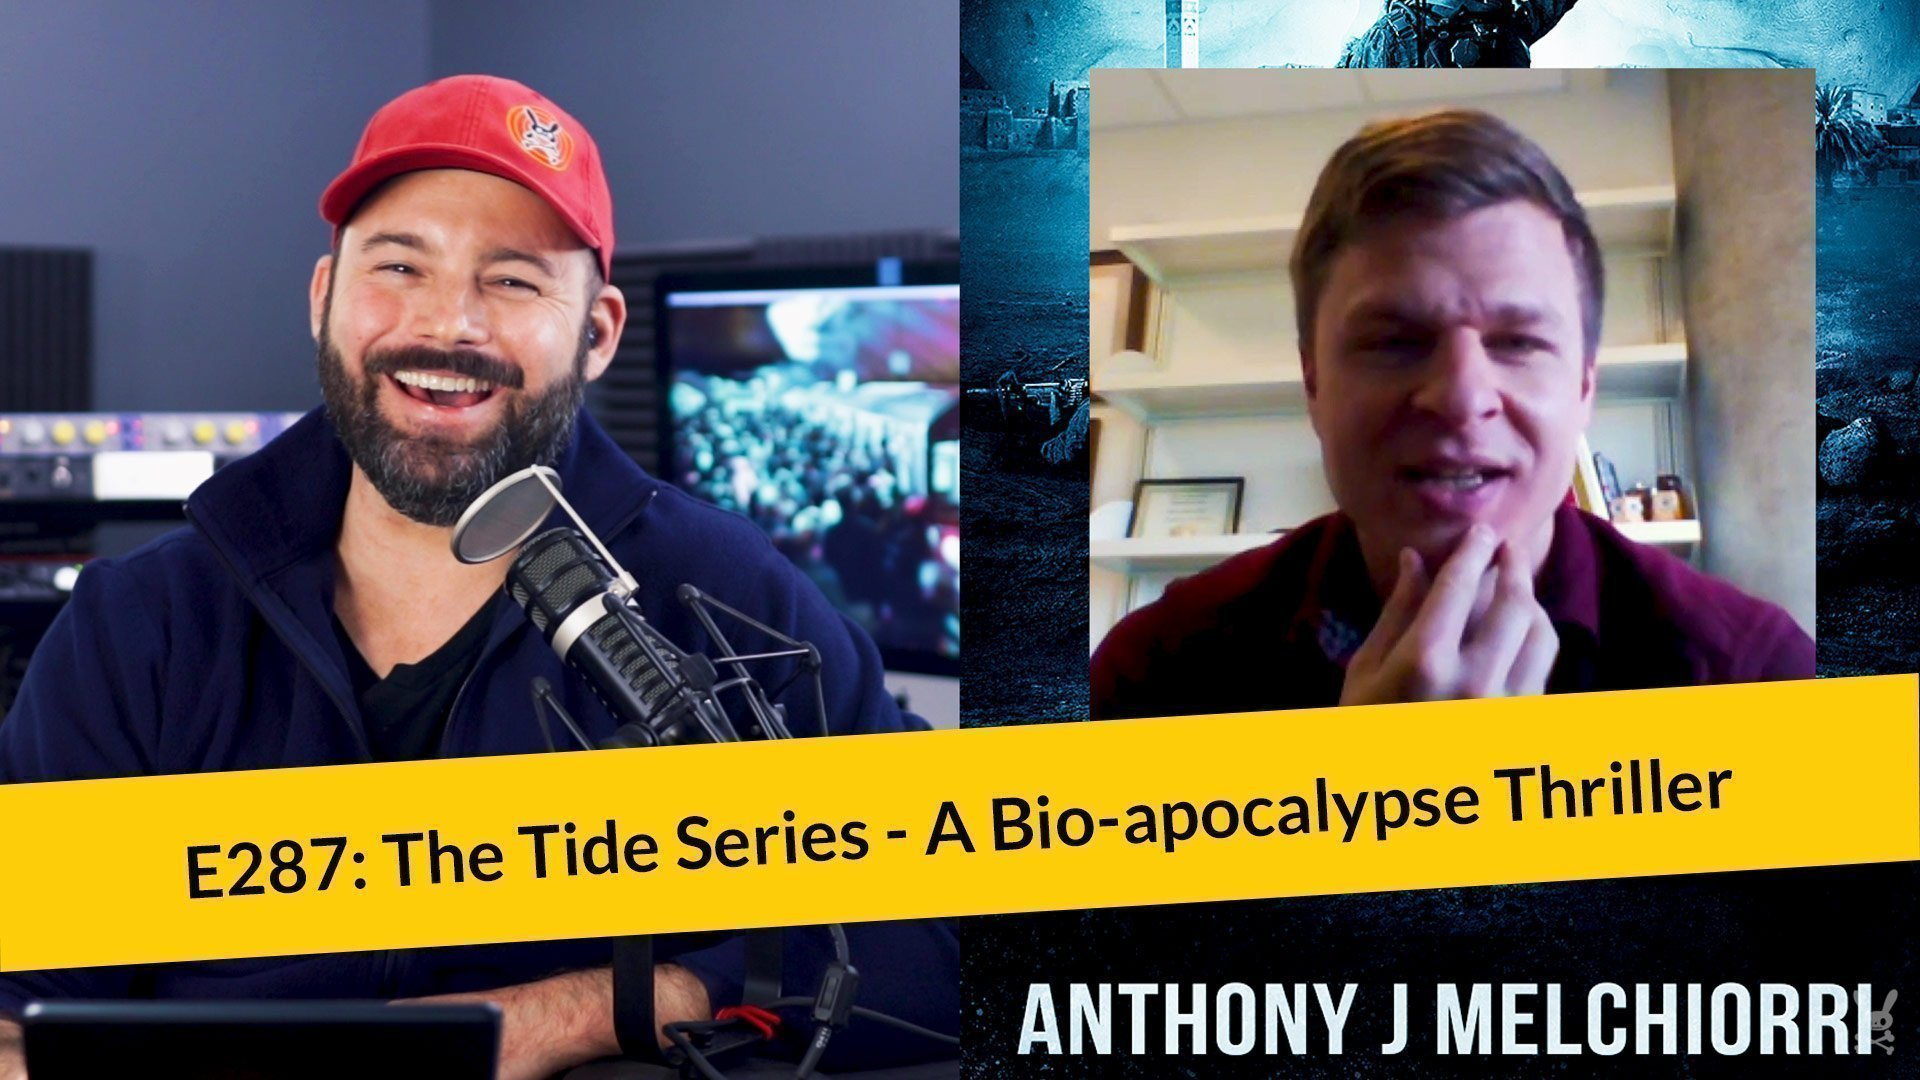 E287: The Tide Series - A Bio-apocalypse Thriller